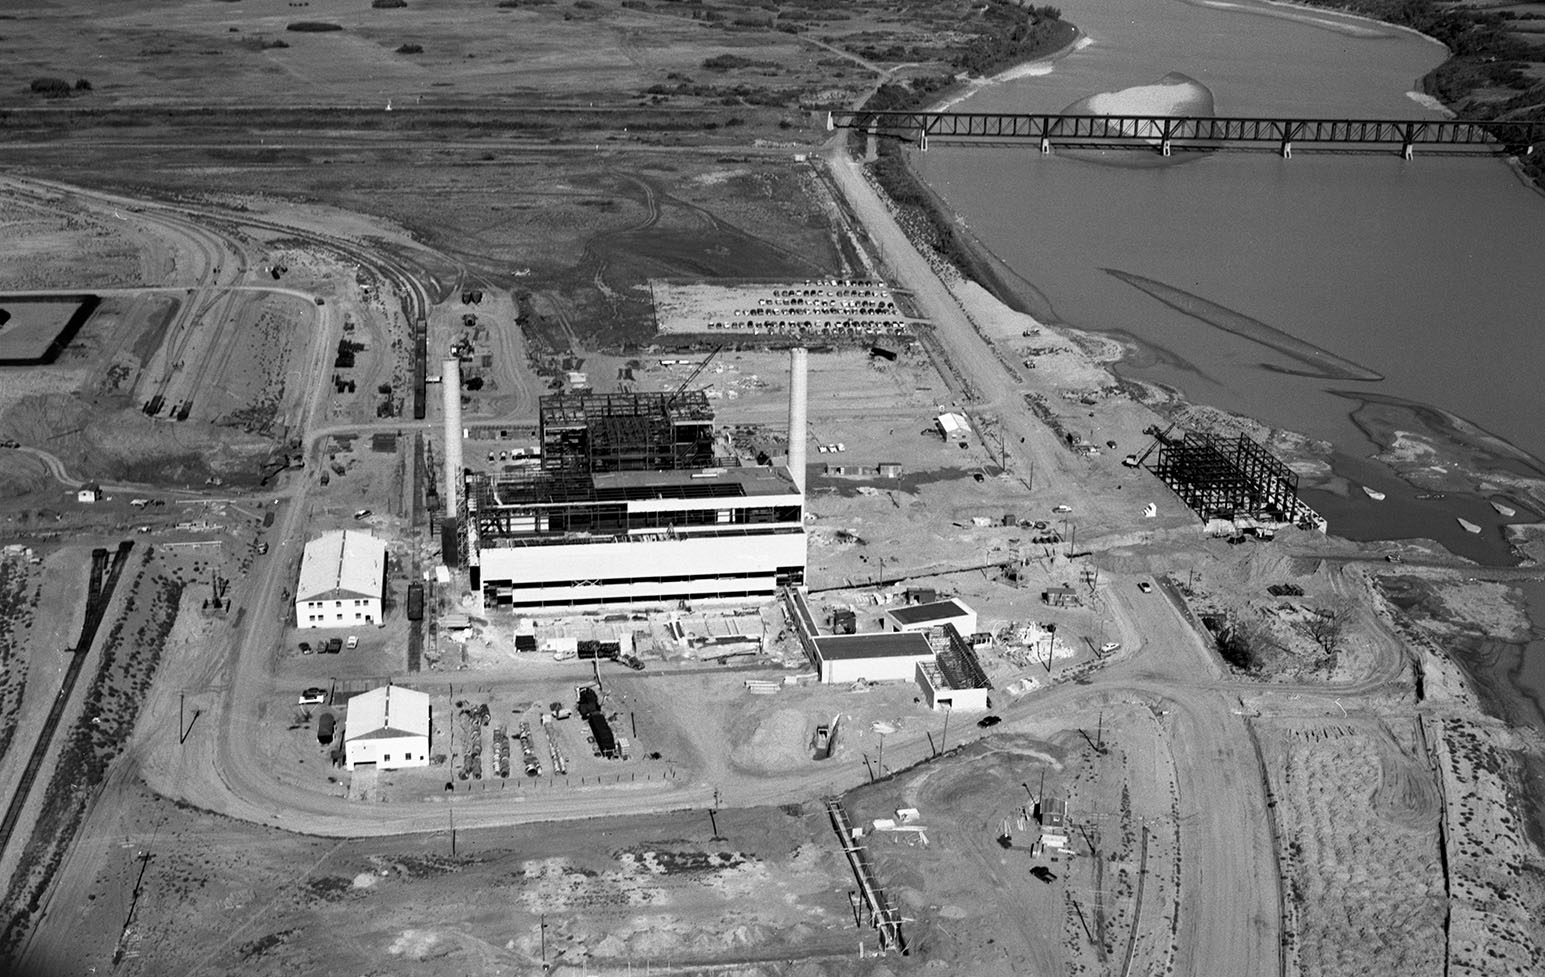 Aerial image of a power plant.